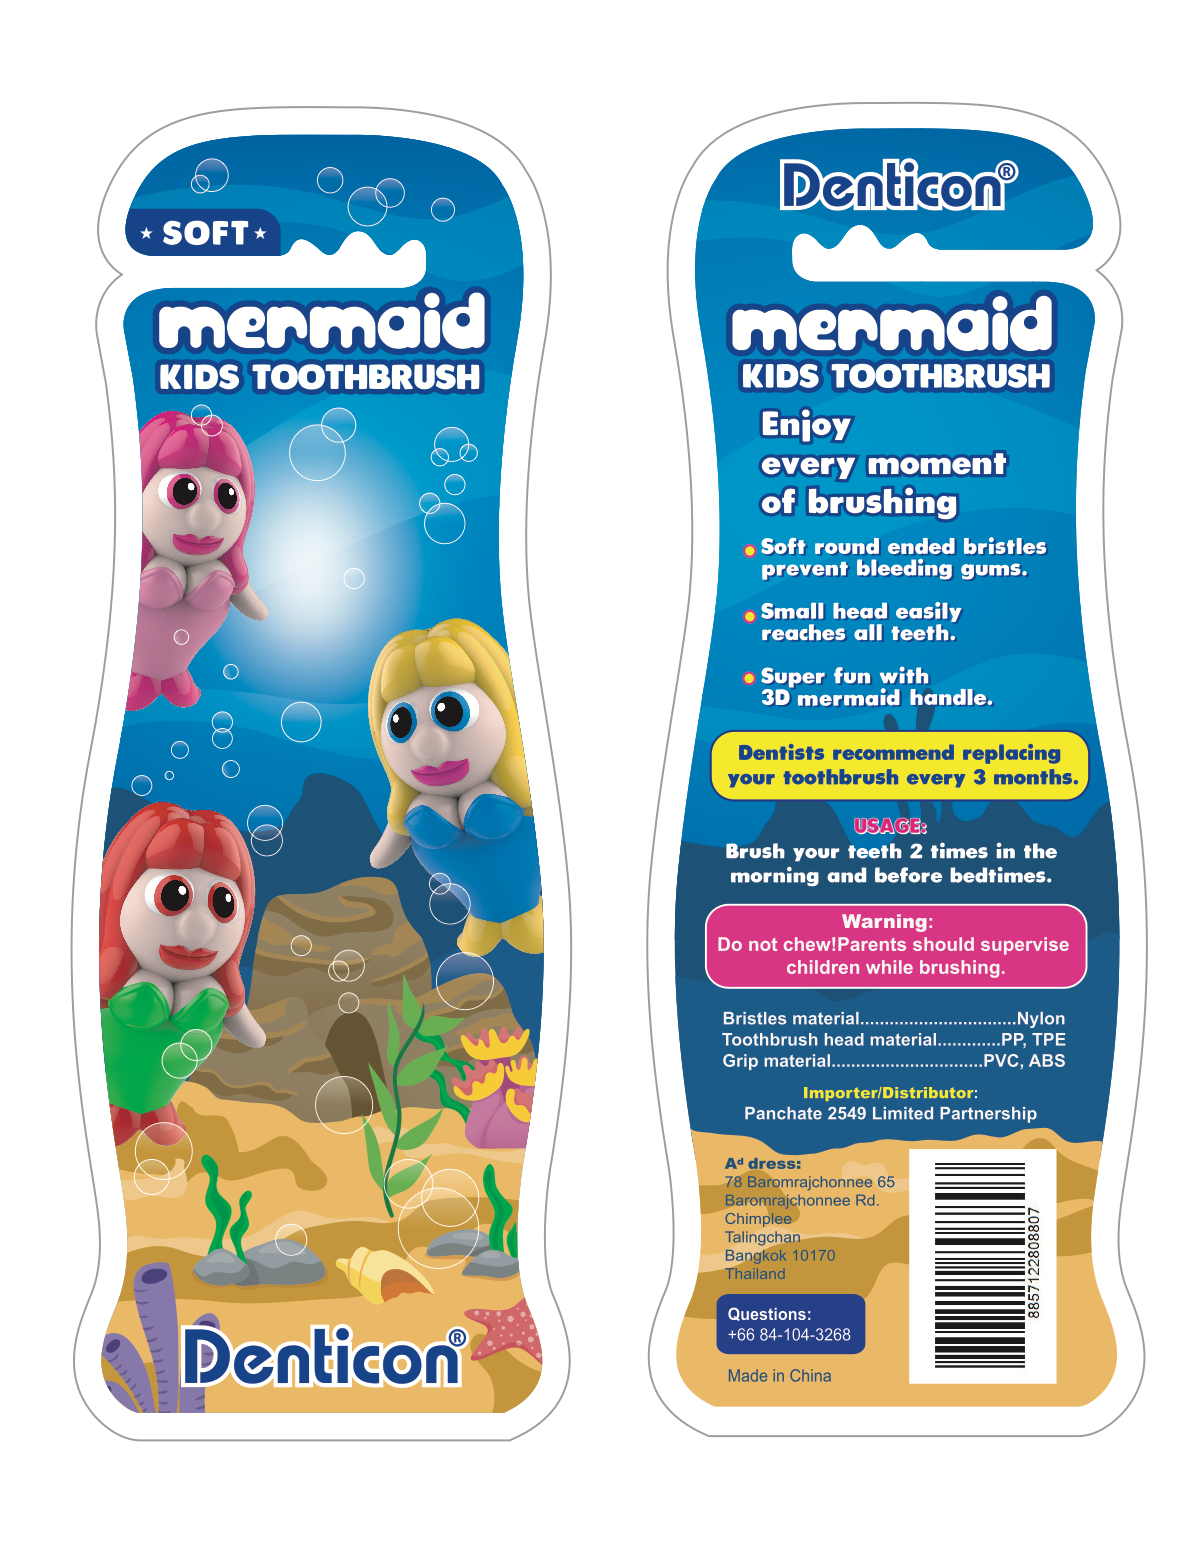 Mermaid kids toothbrush back card